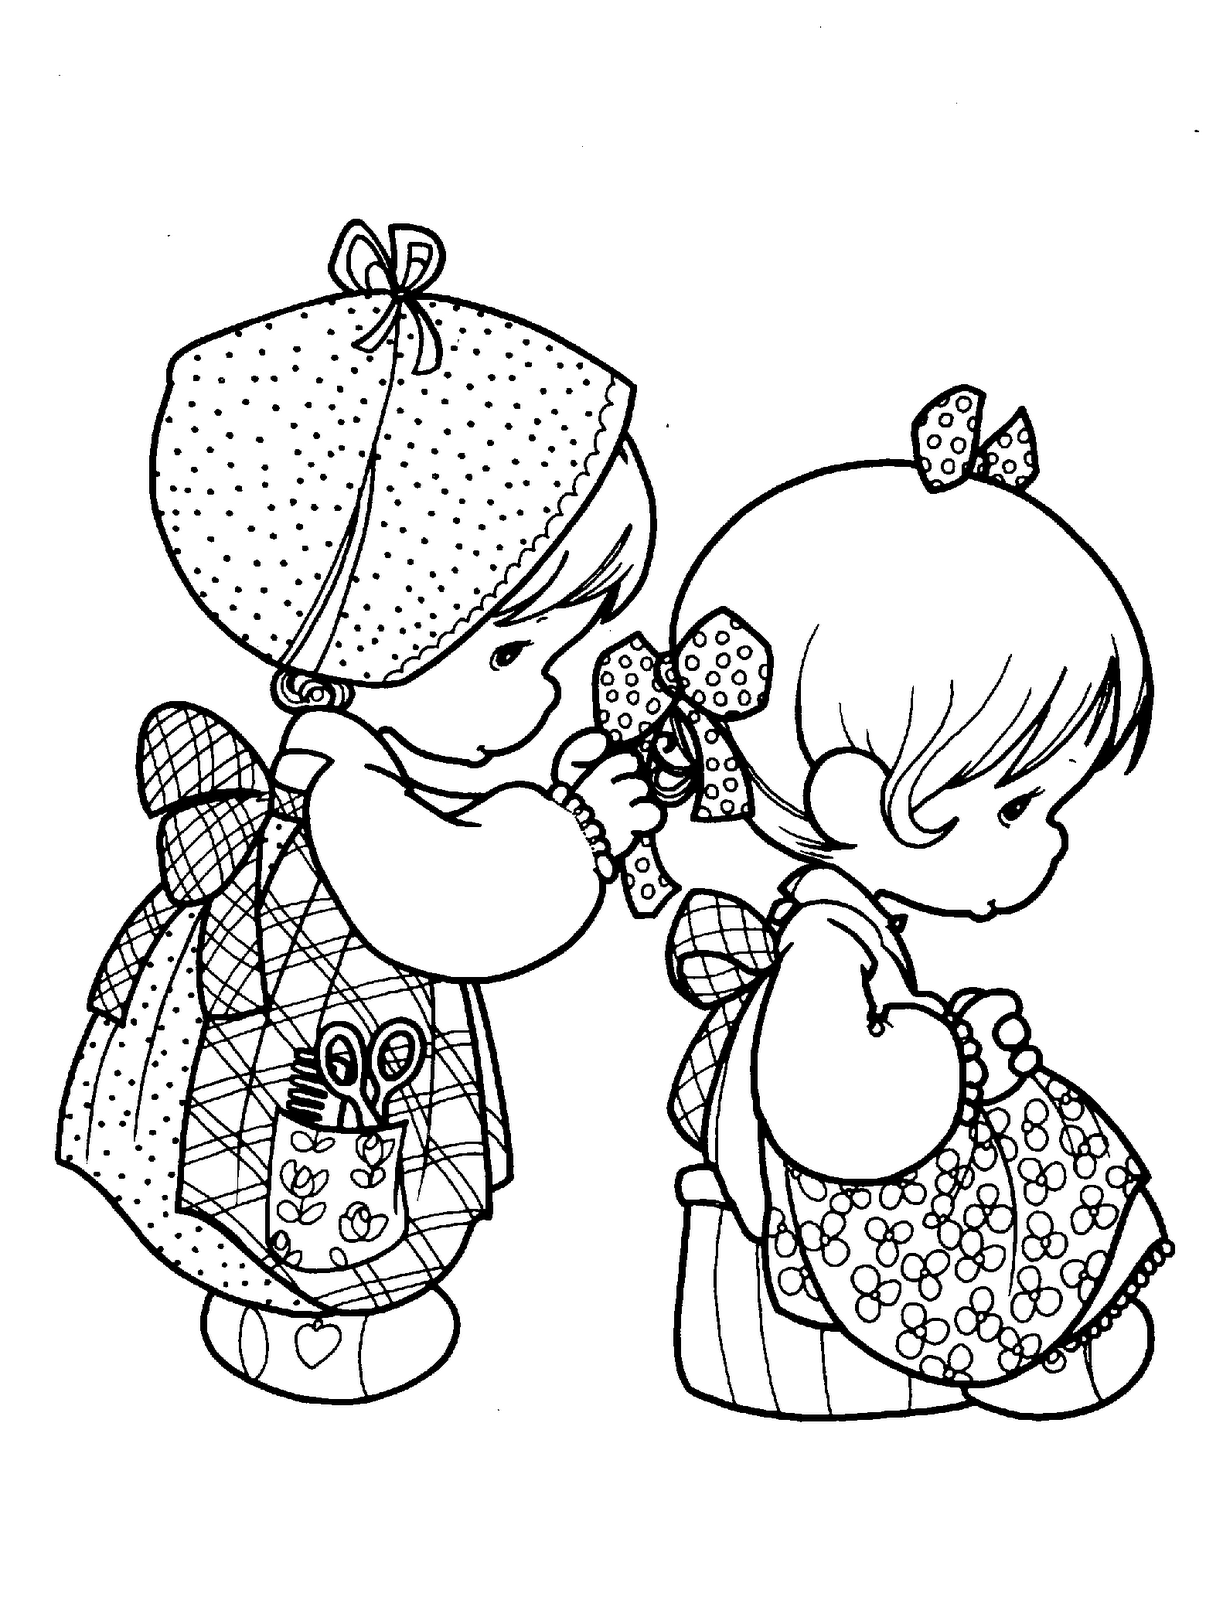 moments coloring pages - photo#27